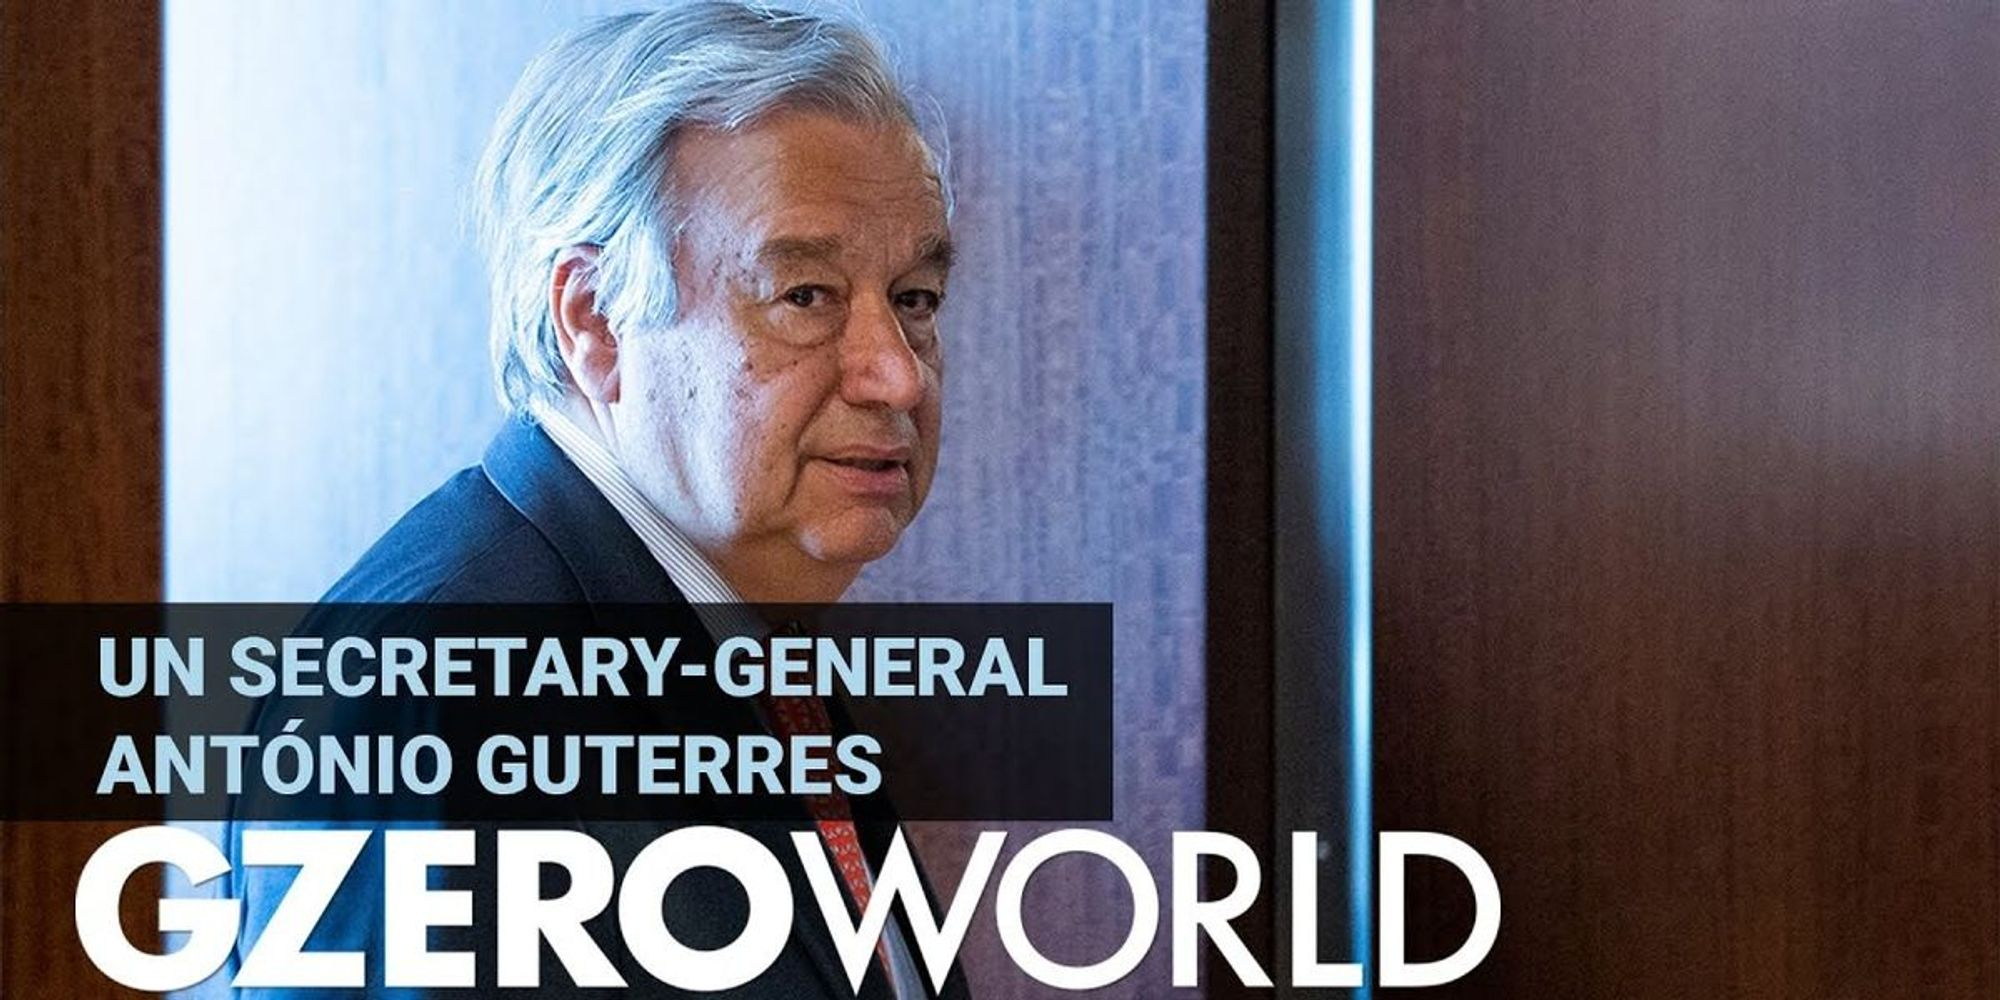 UN Secretary-General António Guterres: Why we still need the United Nations